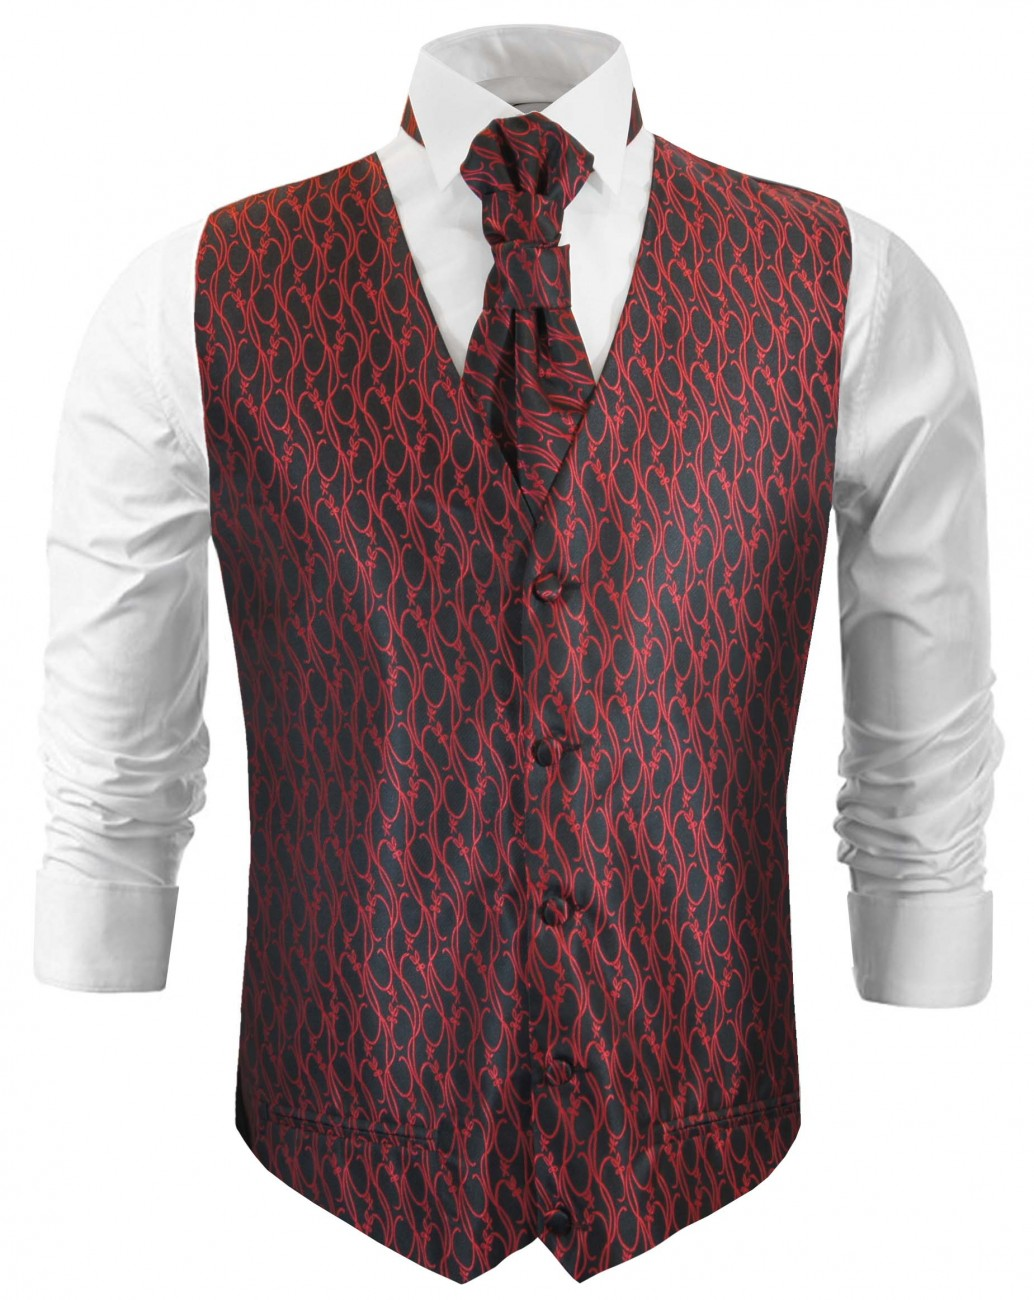 Red black wedding vest waistcoat with cravat